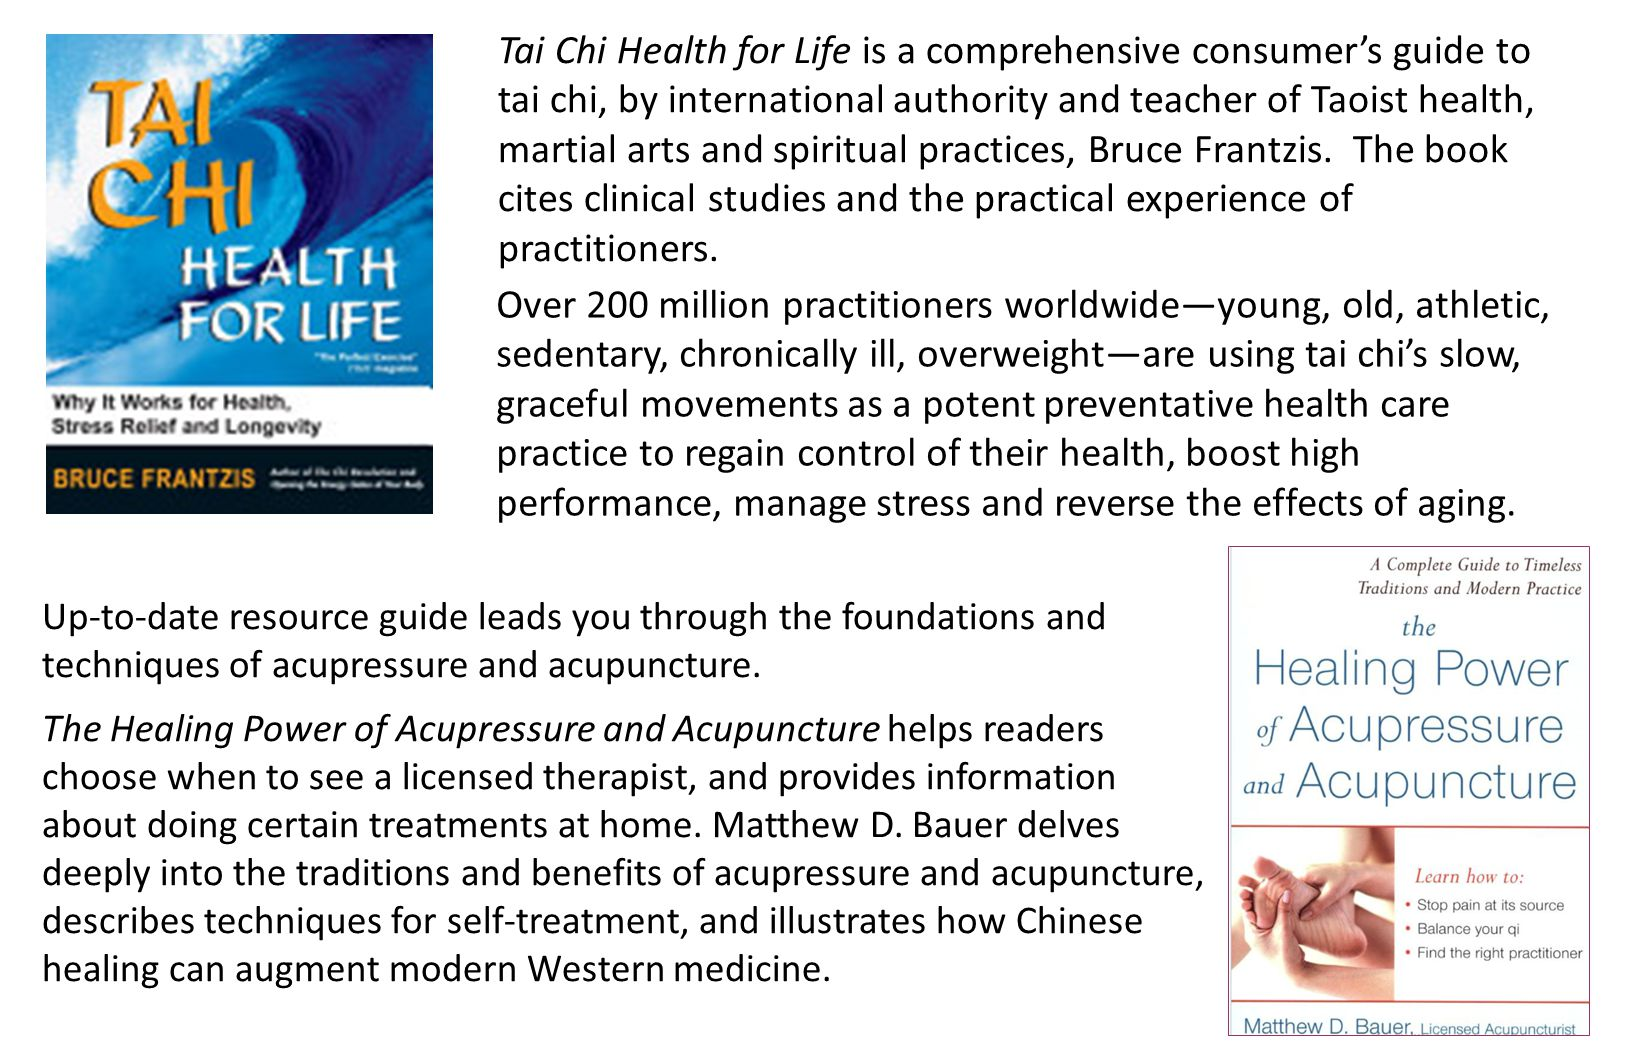 Tai Chi Health for Life is a comprehensive consumer's guide to tai chi, by international authority and teacher of Taoist health, martial arts and spiritual practices, Bruce Frantzis.